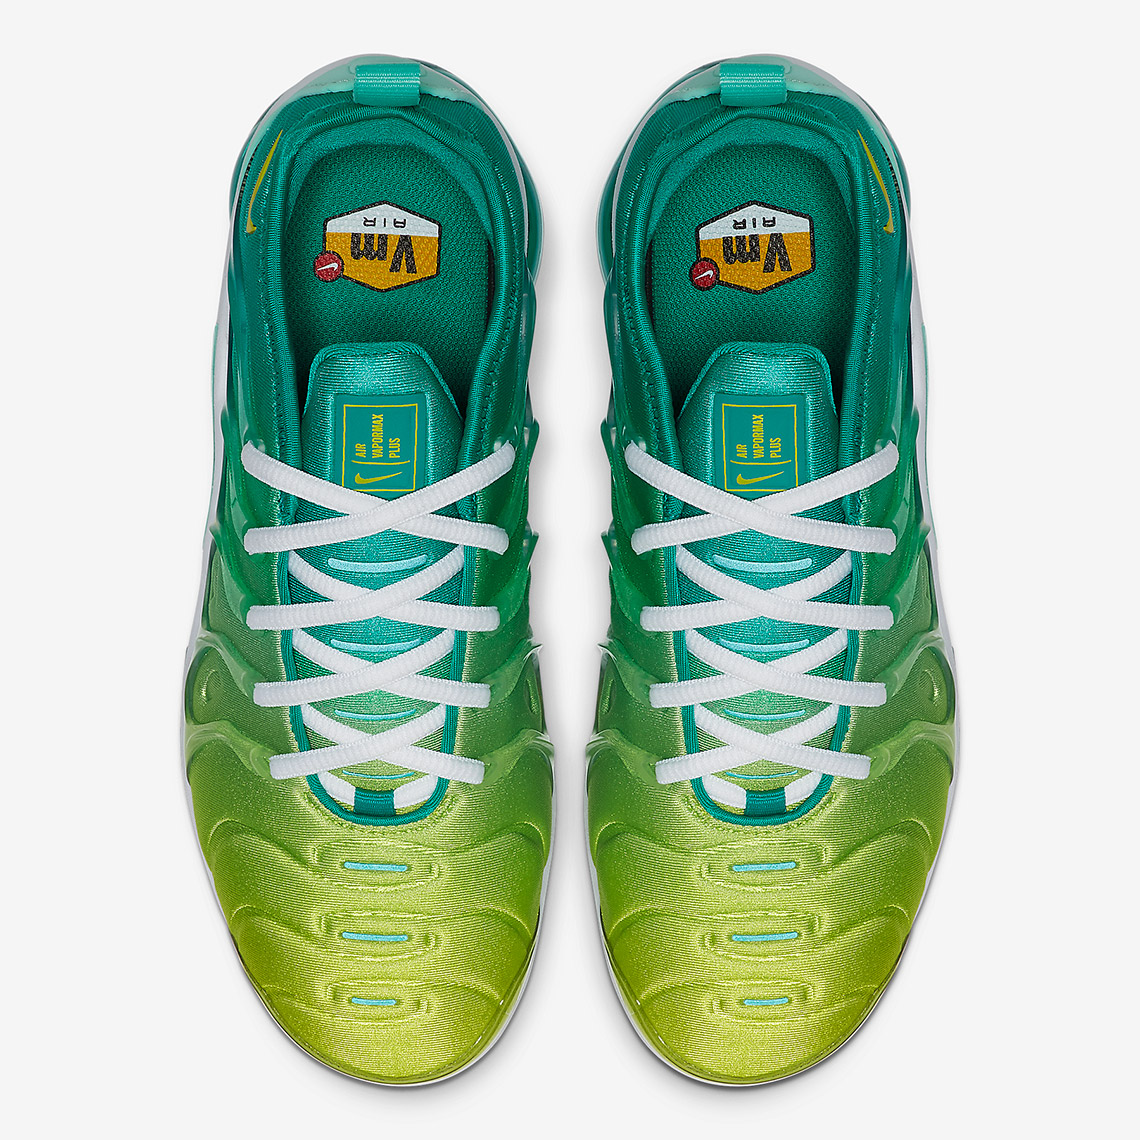 """low priced 0e821 2f049 Nike Refreshes The Vapormax Plus With New """"Lemon Lime ..."""